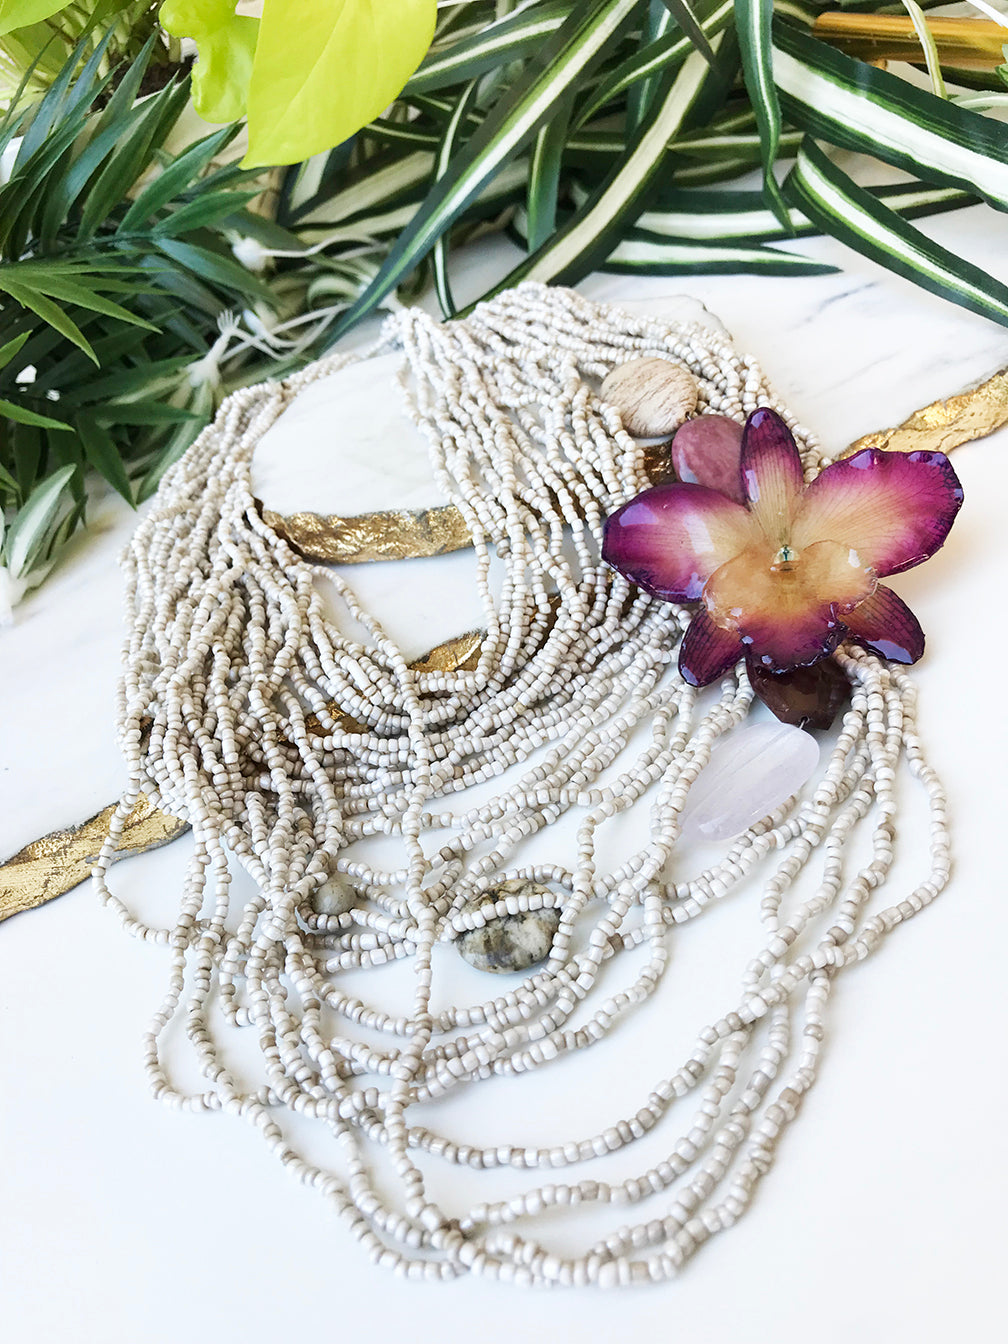 bloom multistrand necklace - BL-M-008-NL